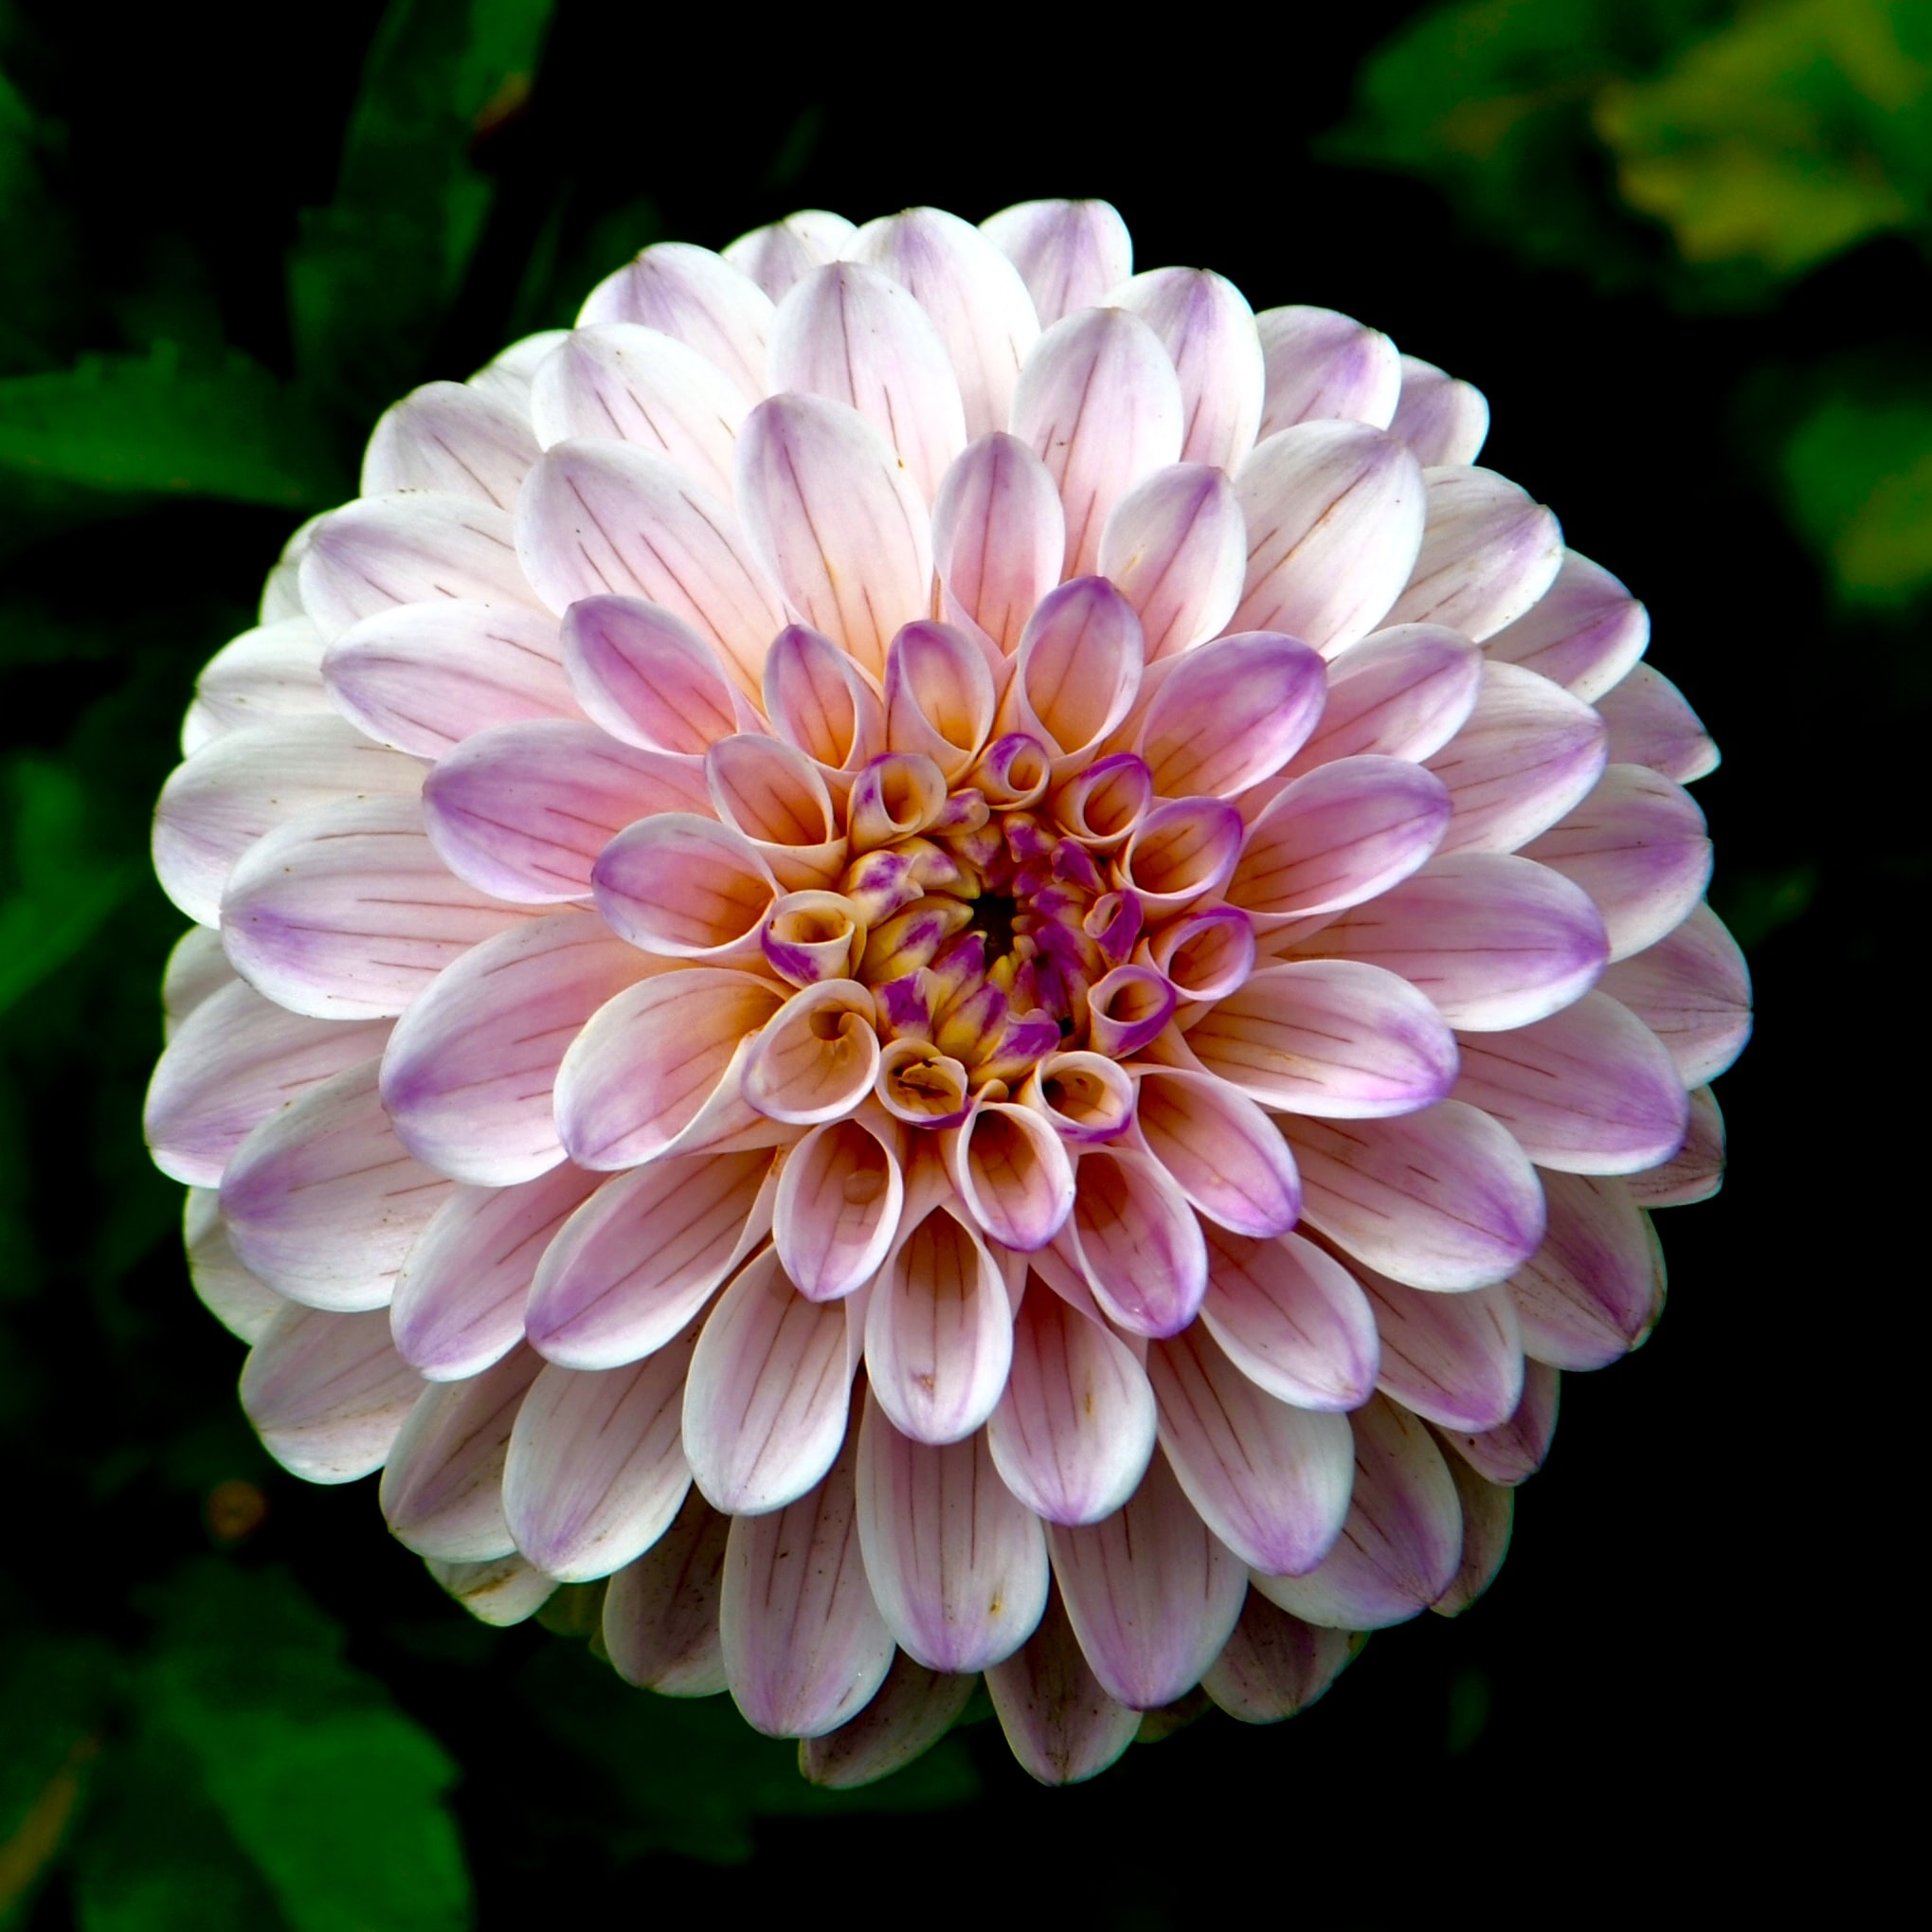 An overhead shot of a pink dahlia